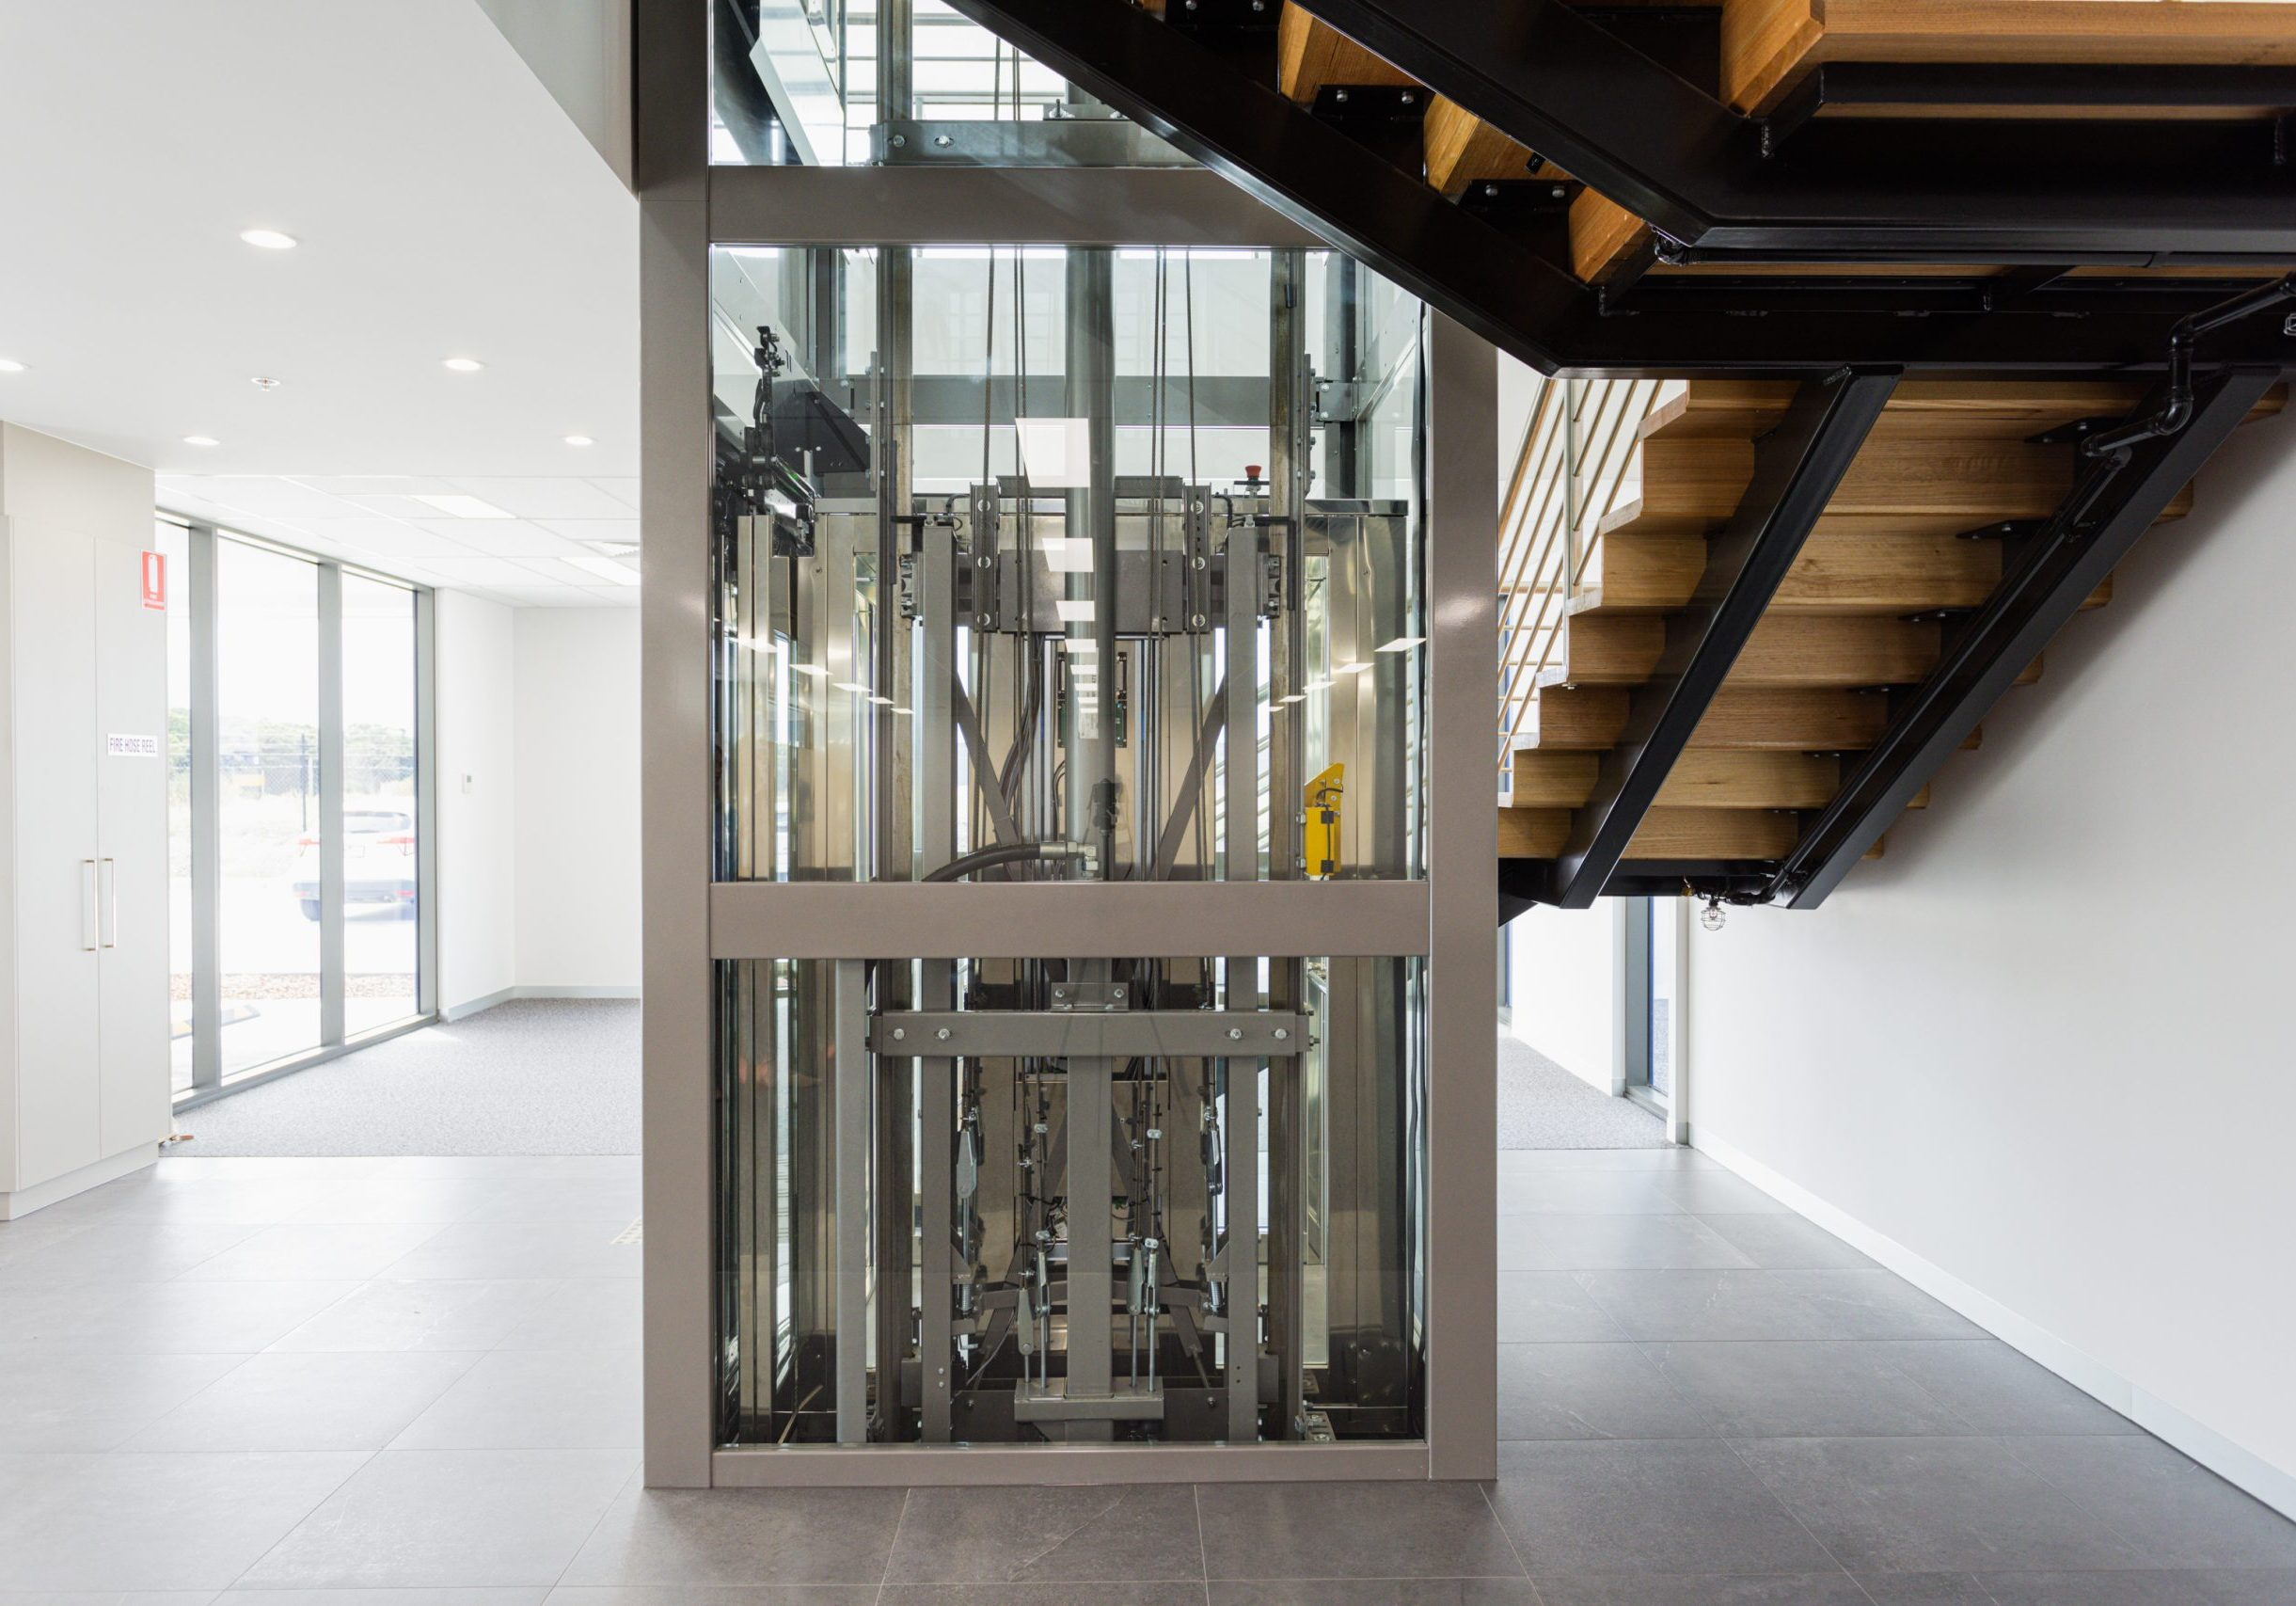 Commercial elevator viewed from the back, showcasing the engineering